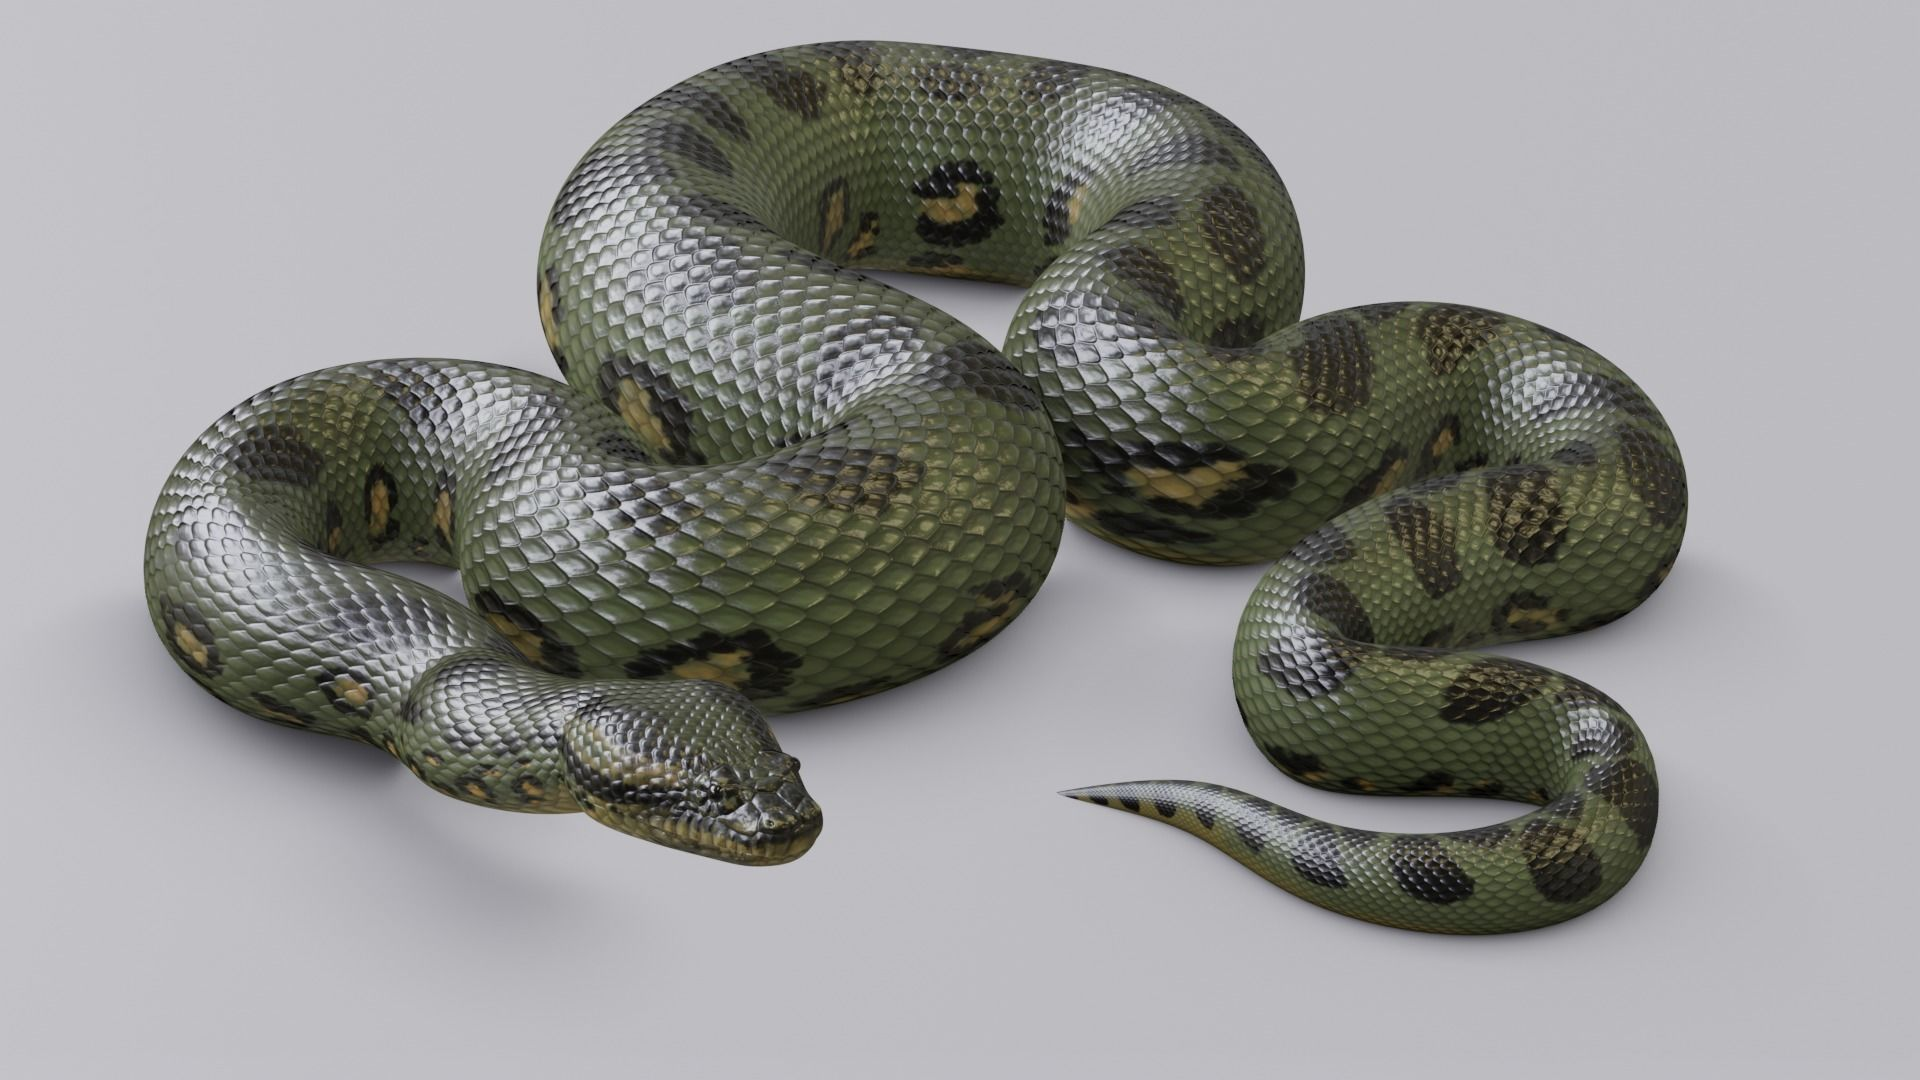 Animated Green Anaconda